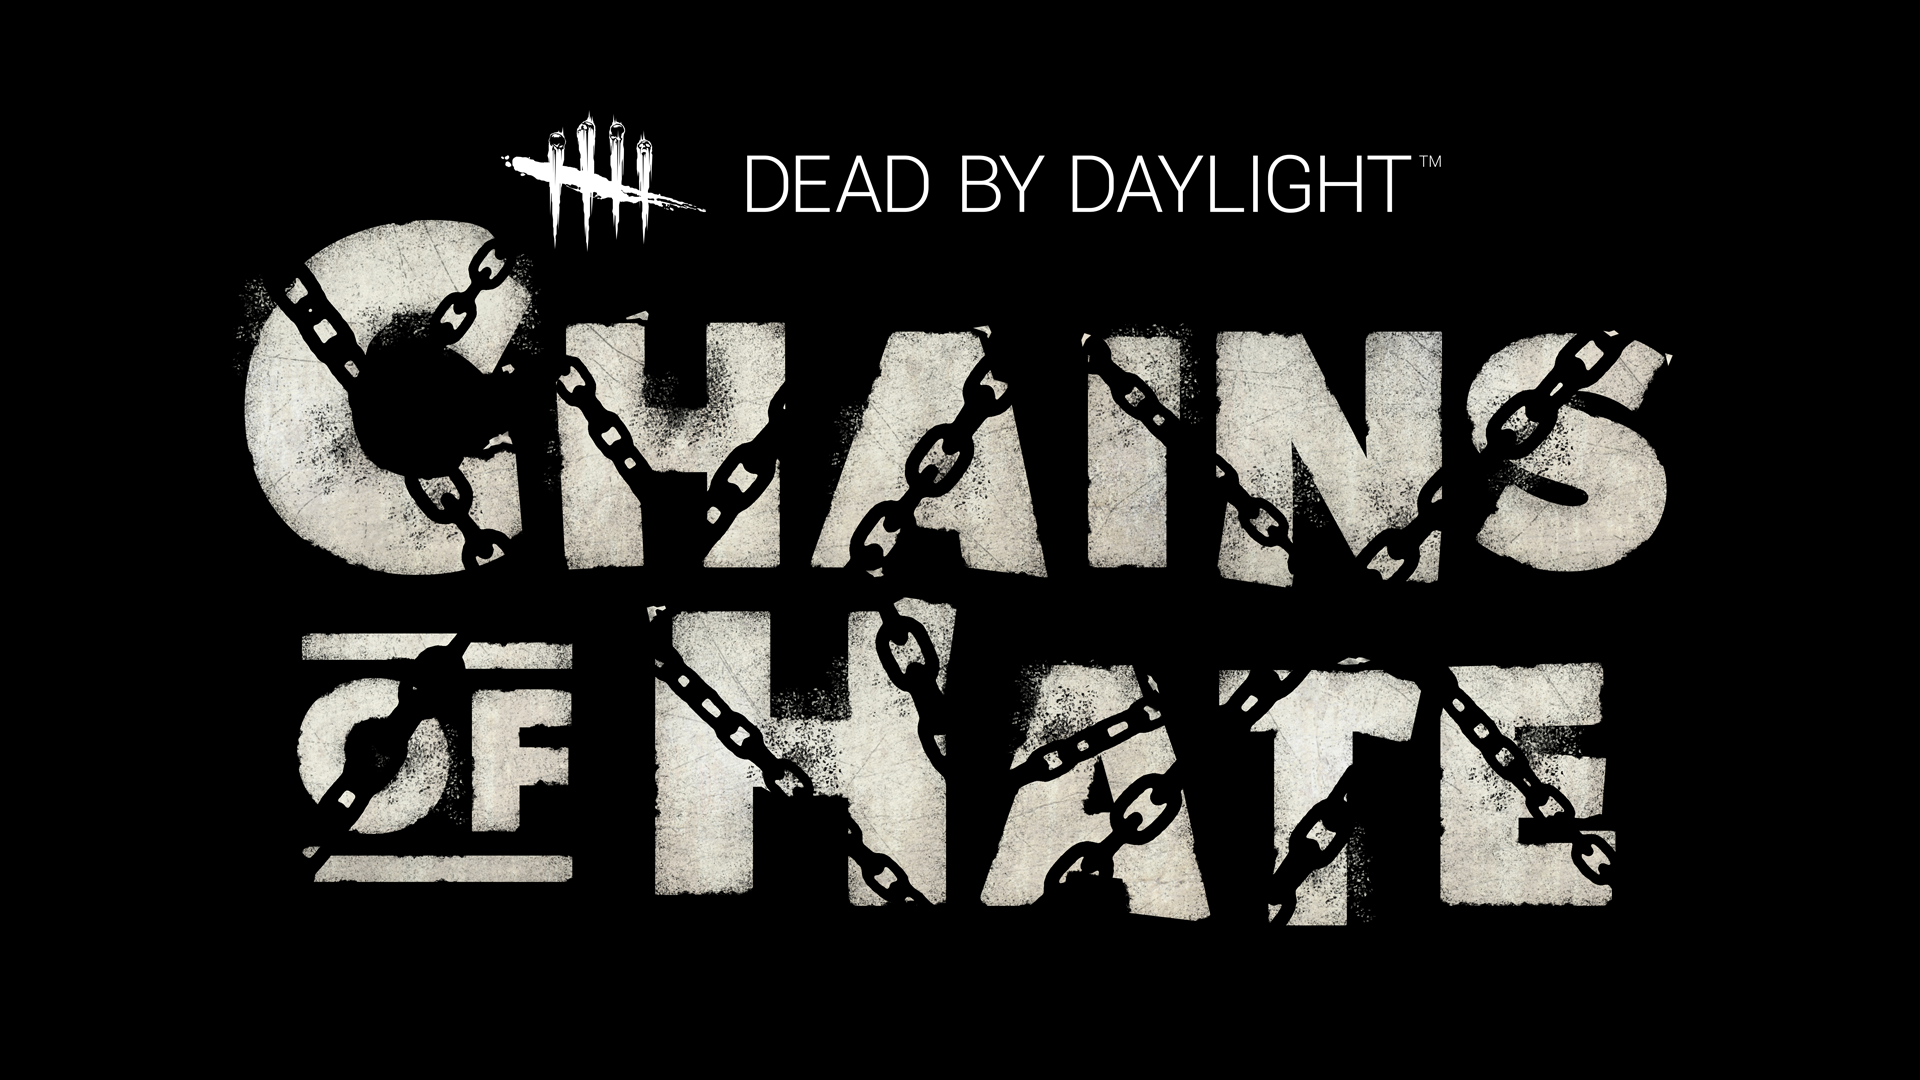 DBD_ChainsOfHate_PTB_1920x1080_forums.png